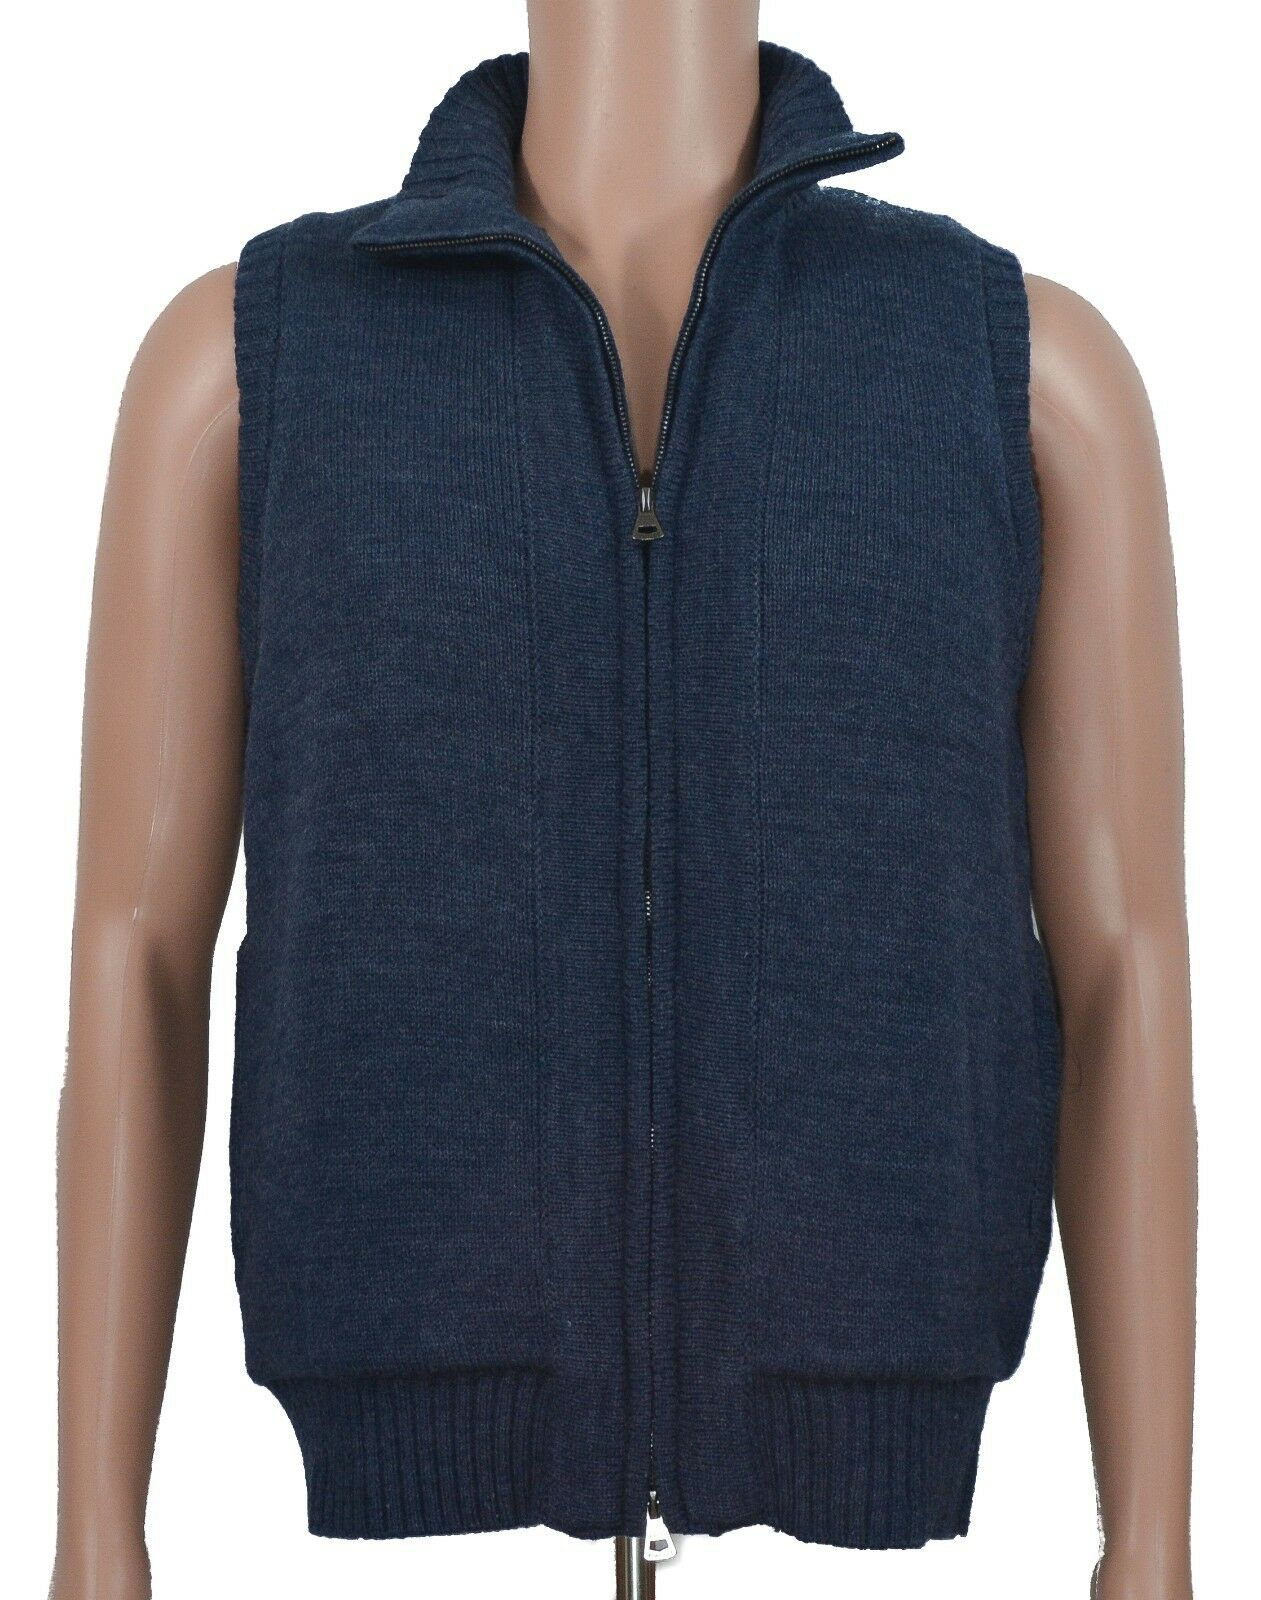 Weatherproof #121 Men's Warm Liner Full Zip Sweater Vest M | eBay